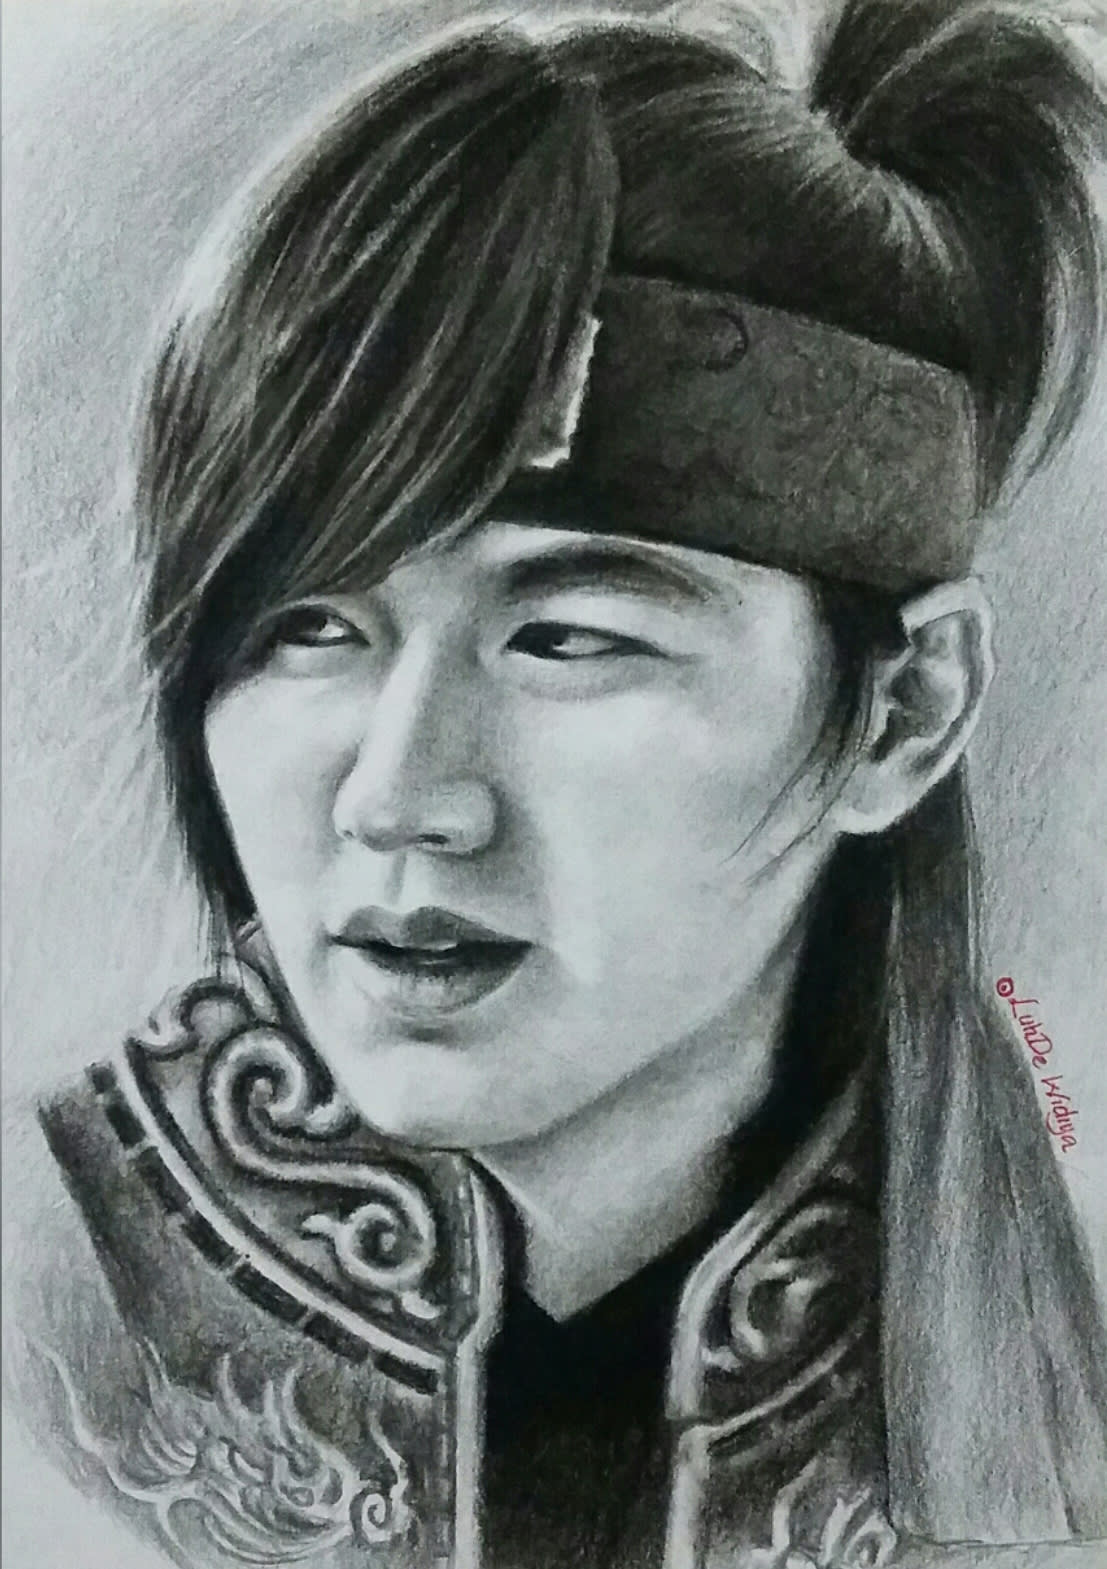 I will draw realistic pencil portrait from a photo